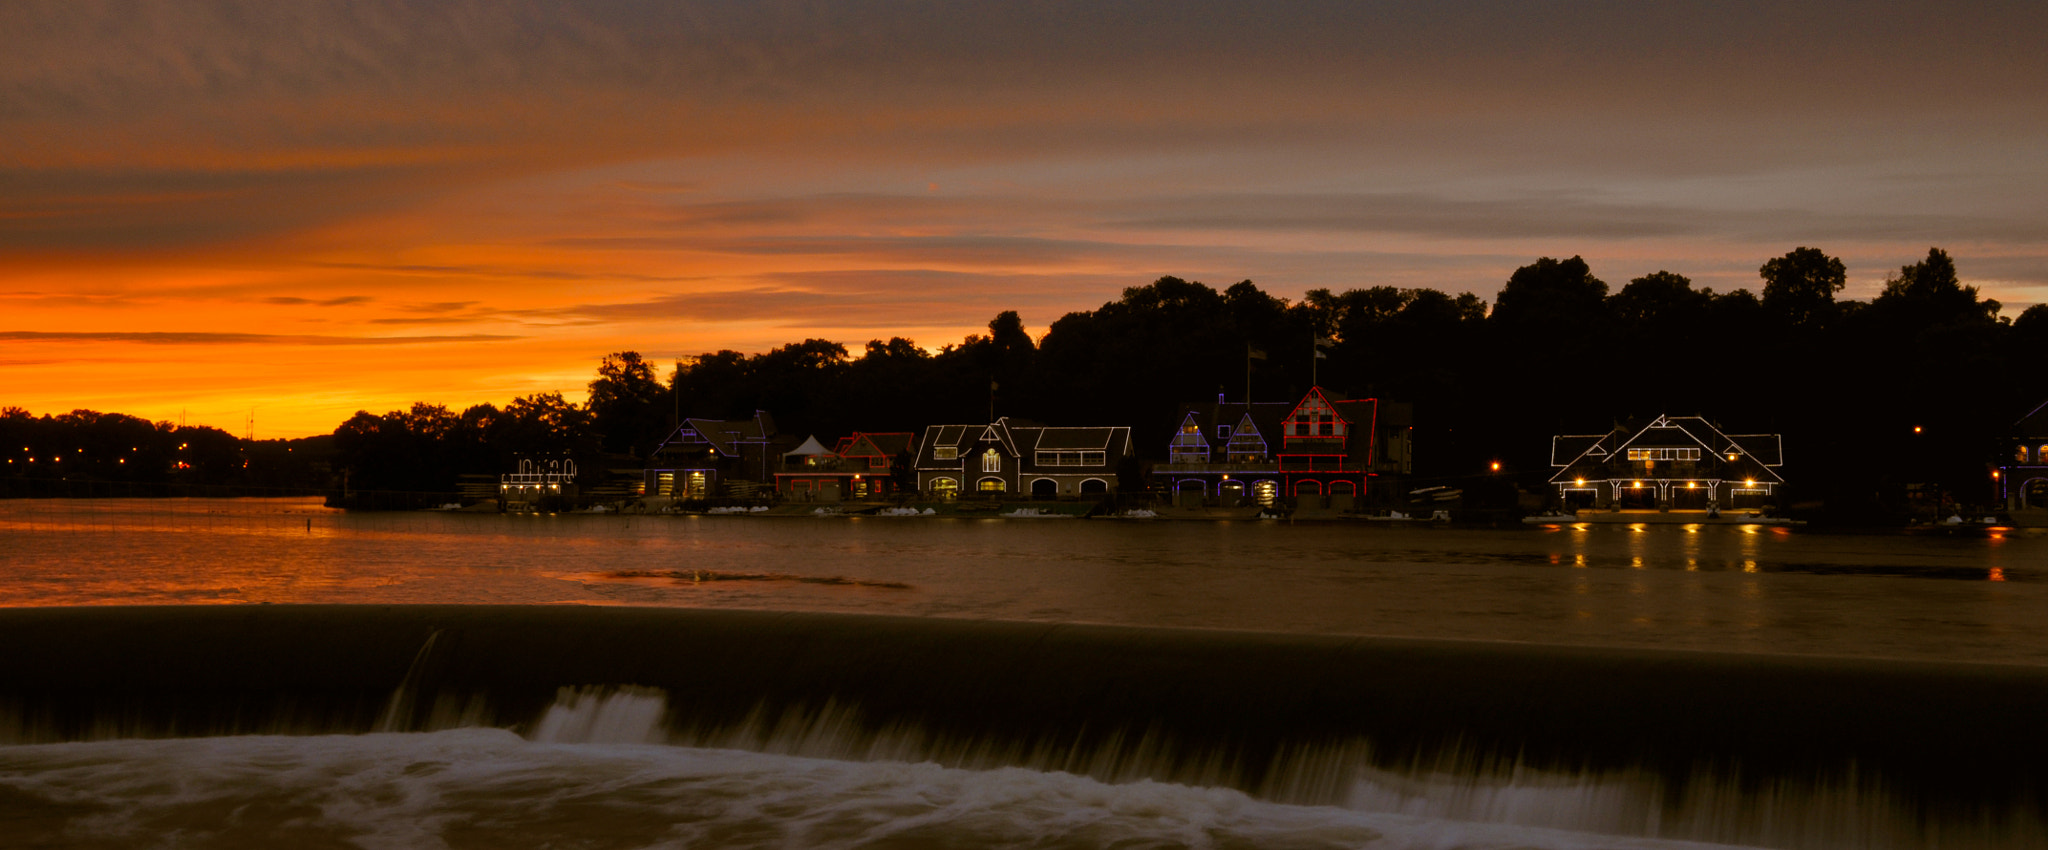 Photograph Sunset over Boat House row by Pankesh Contractor on 500px